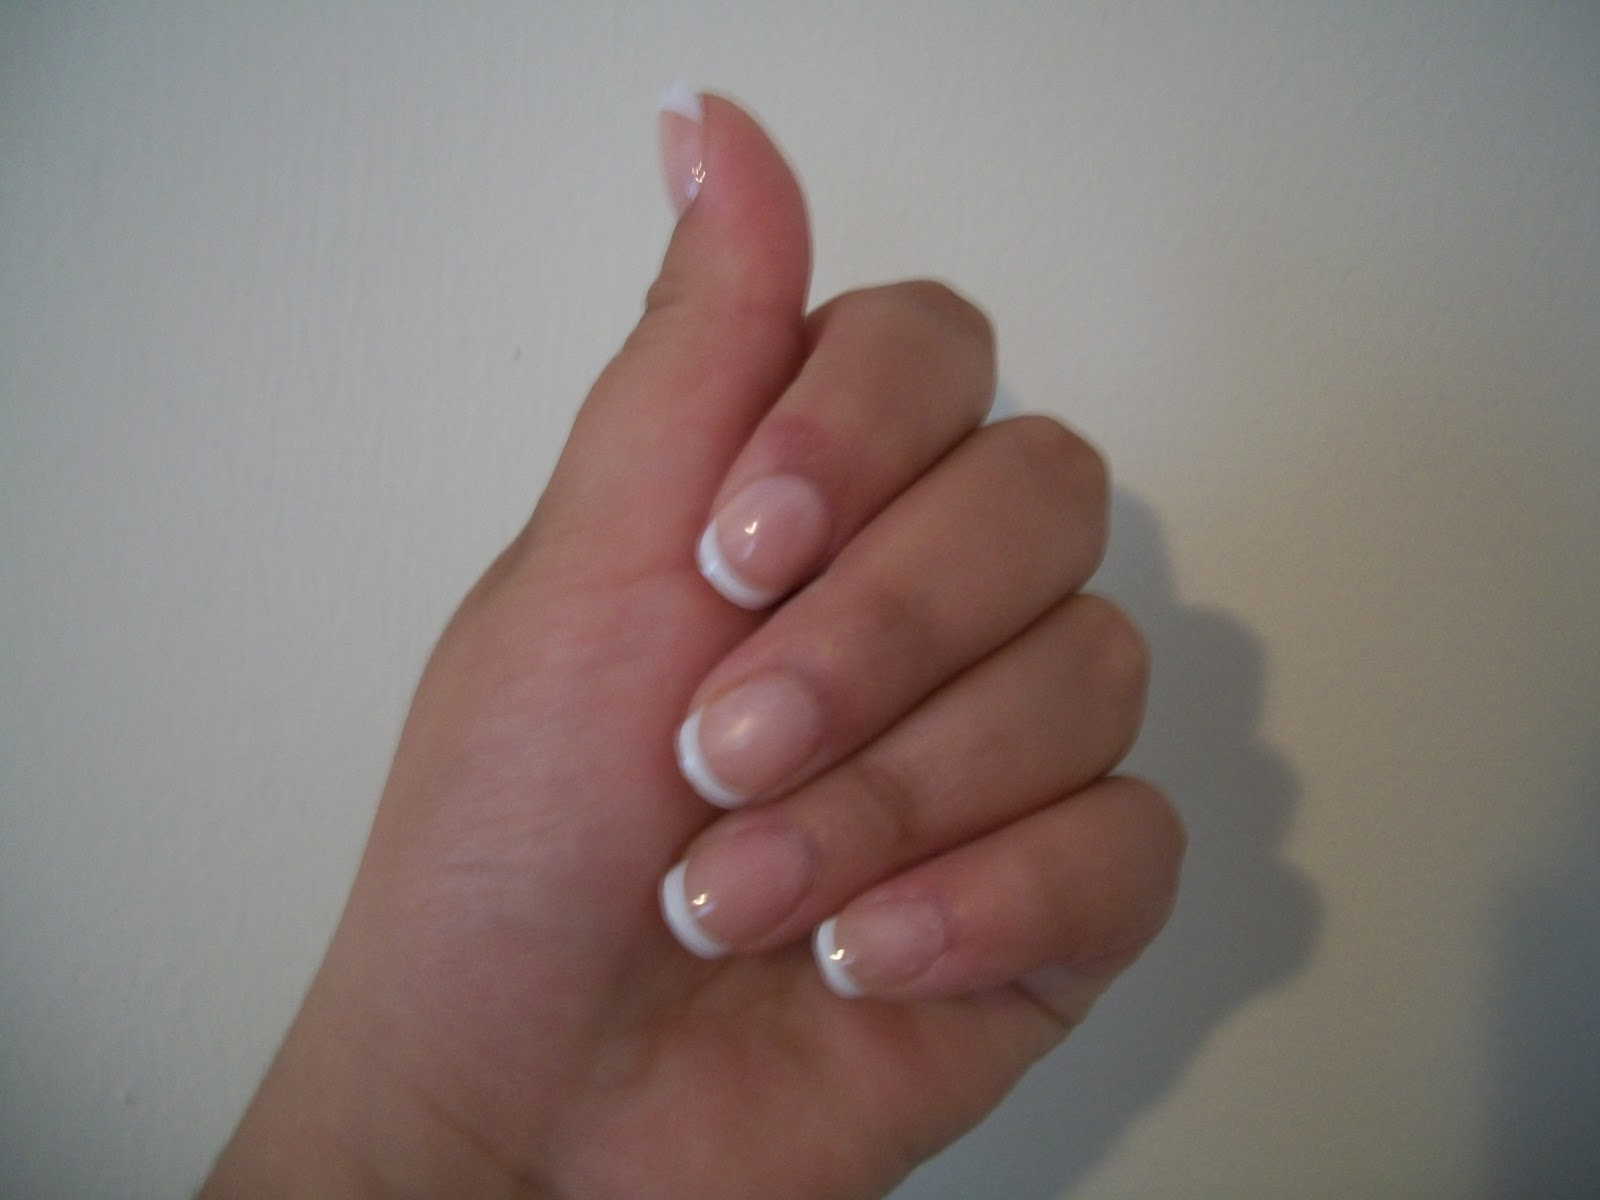 Fast French 10 Min Mani!: Broadway Nails French Tip ManiCure